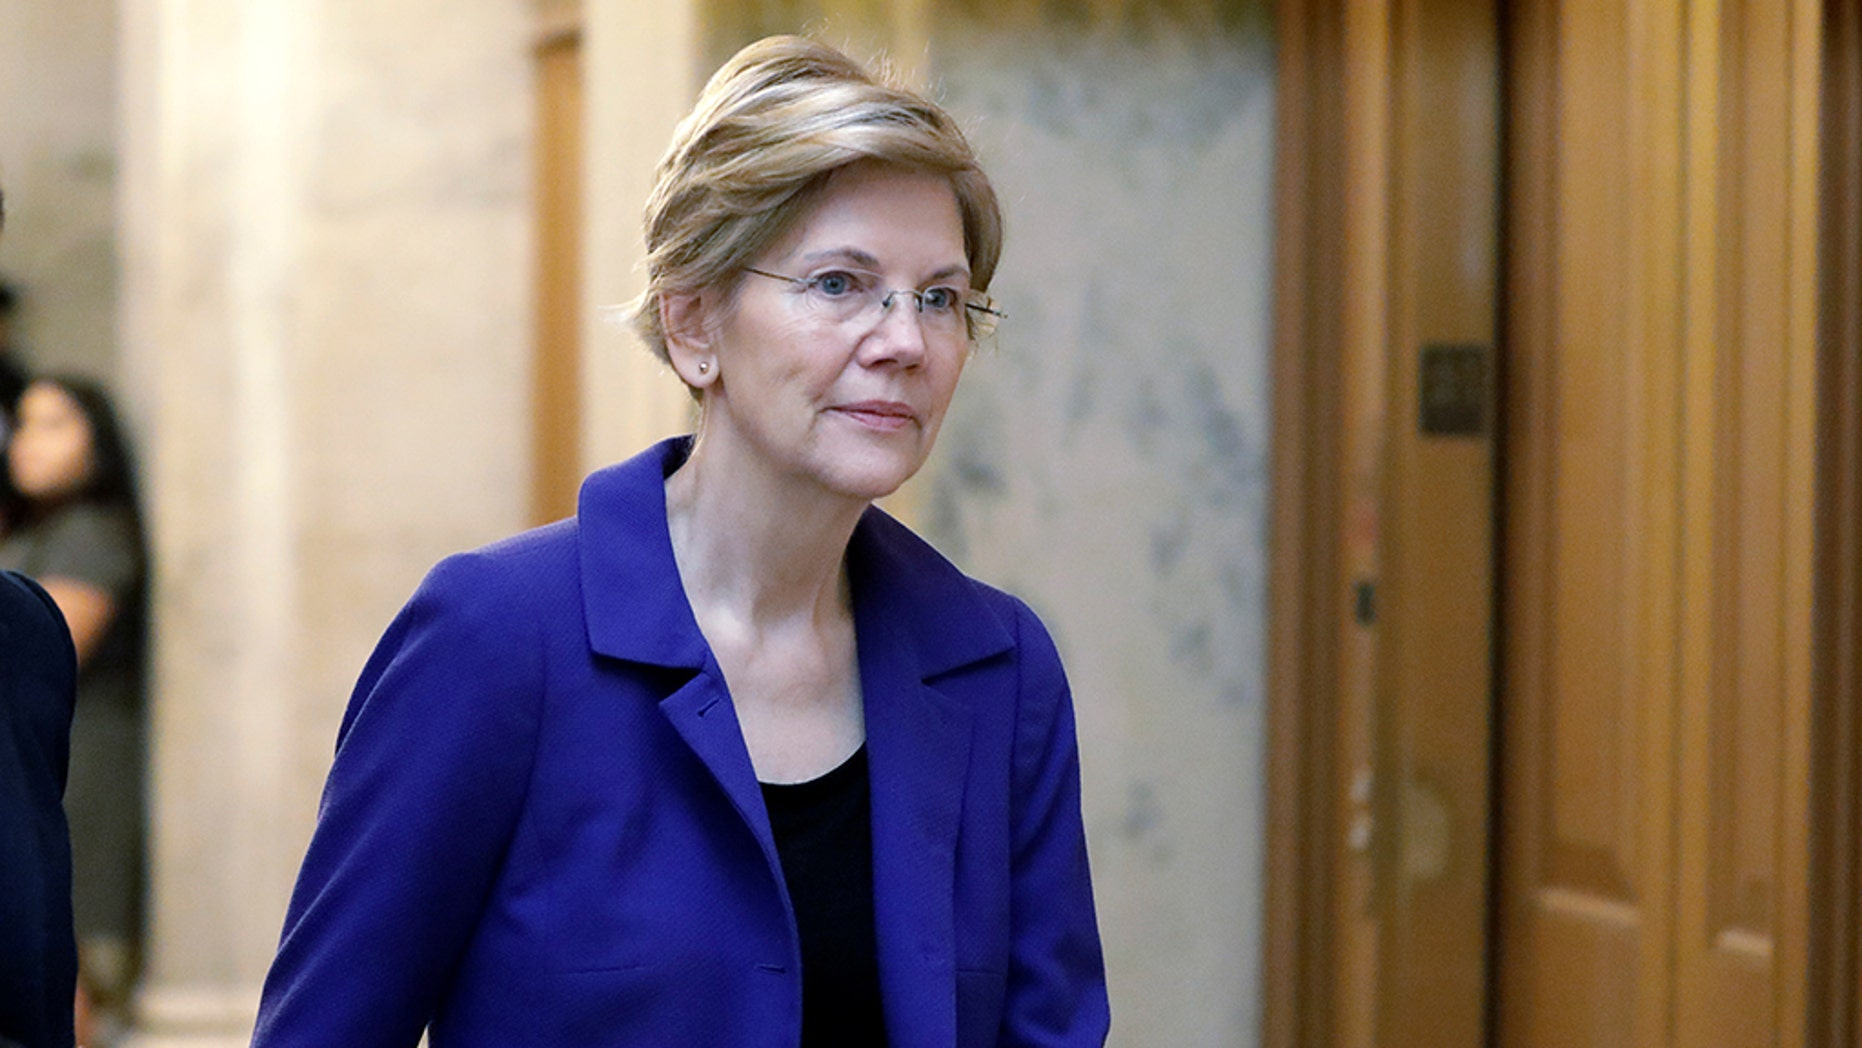 Massachusetts politicians – including Democratic Sen. Elizabeth Warren – who competence be mulling a 2020 White House run should consider delicately about a decision, The Boston Globe's editorial house suggested in a square posted Thursday.